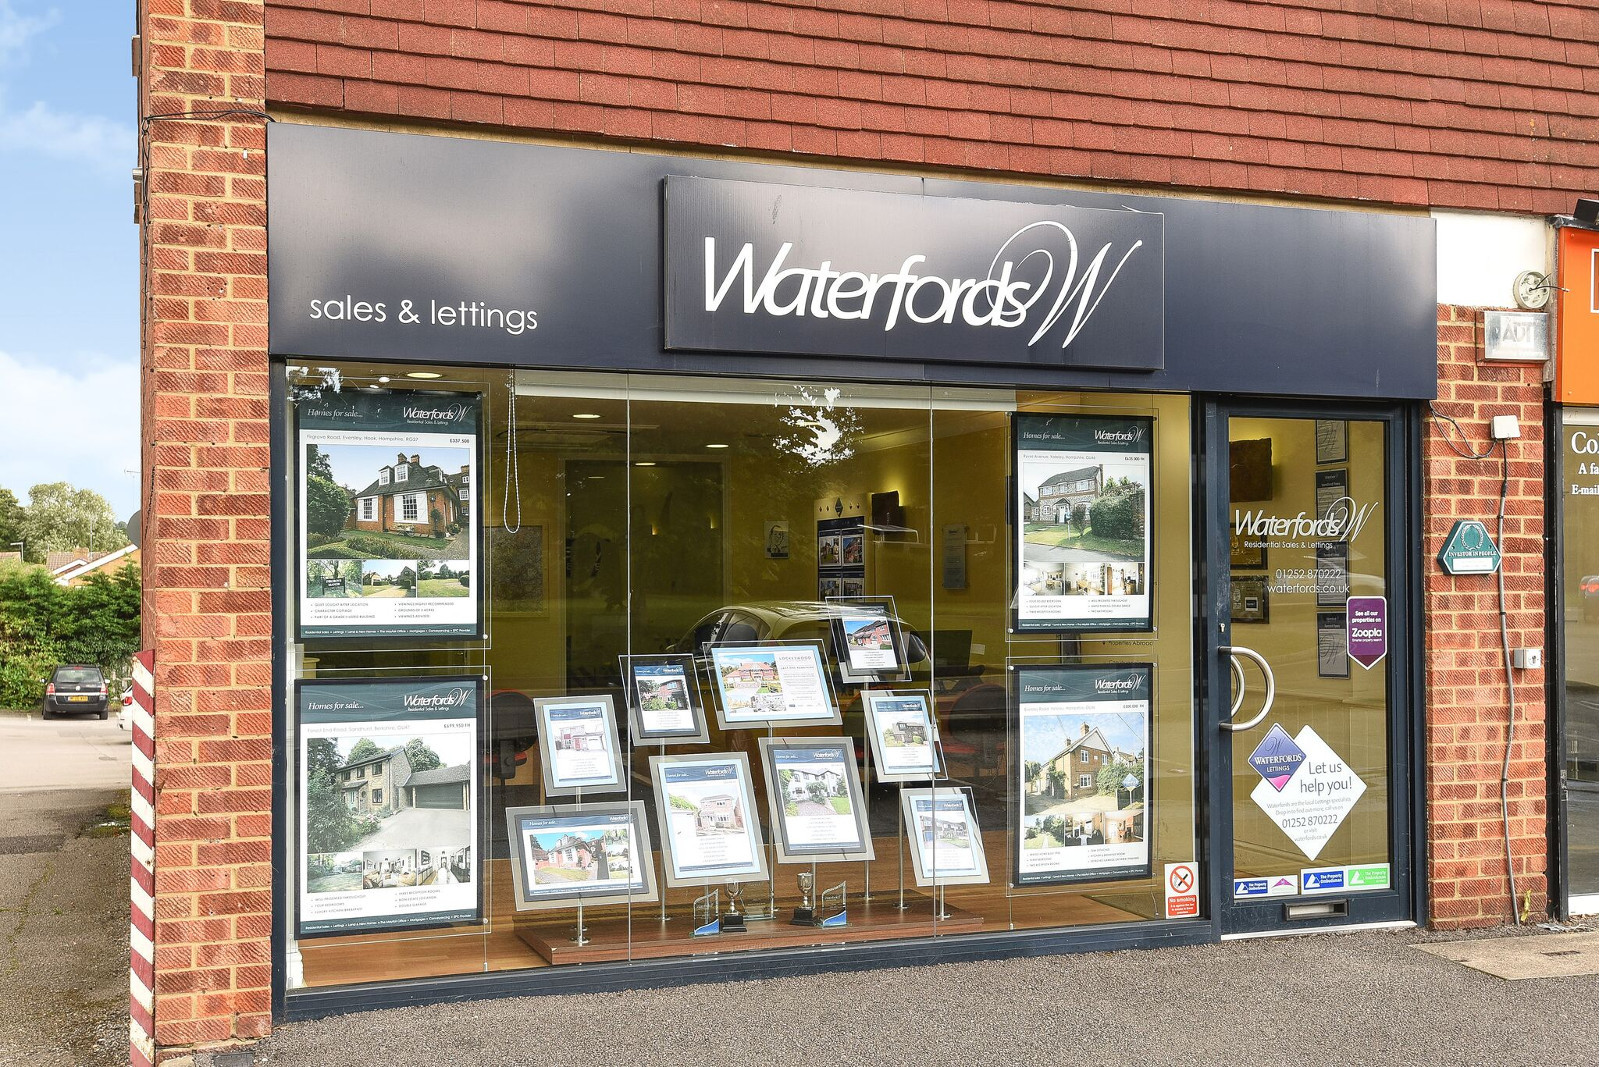 Waterfords | Yateley Lettings | Branch image 2